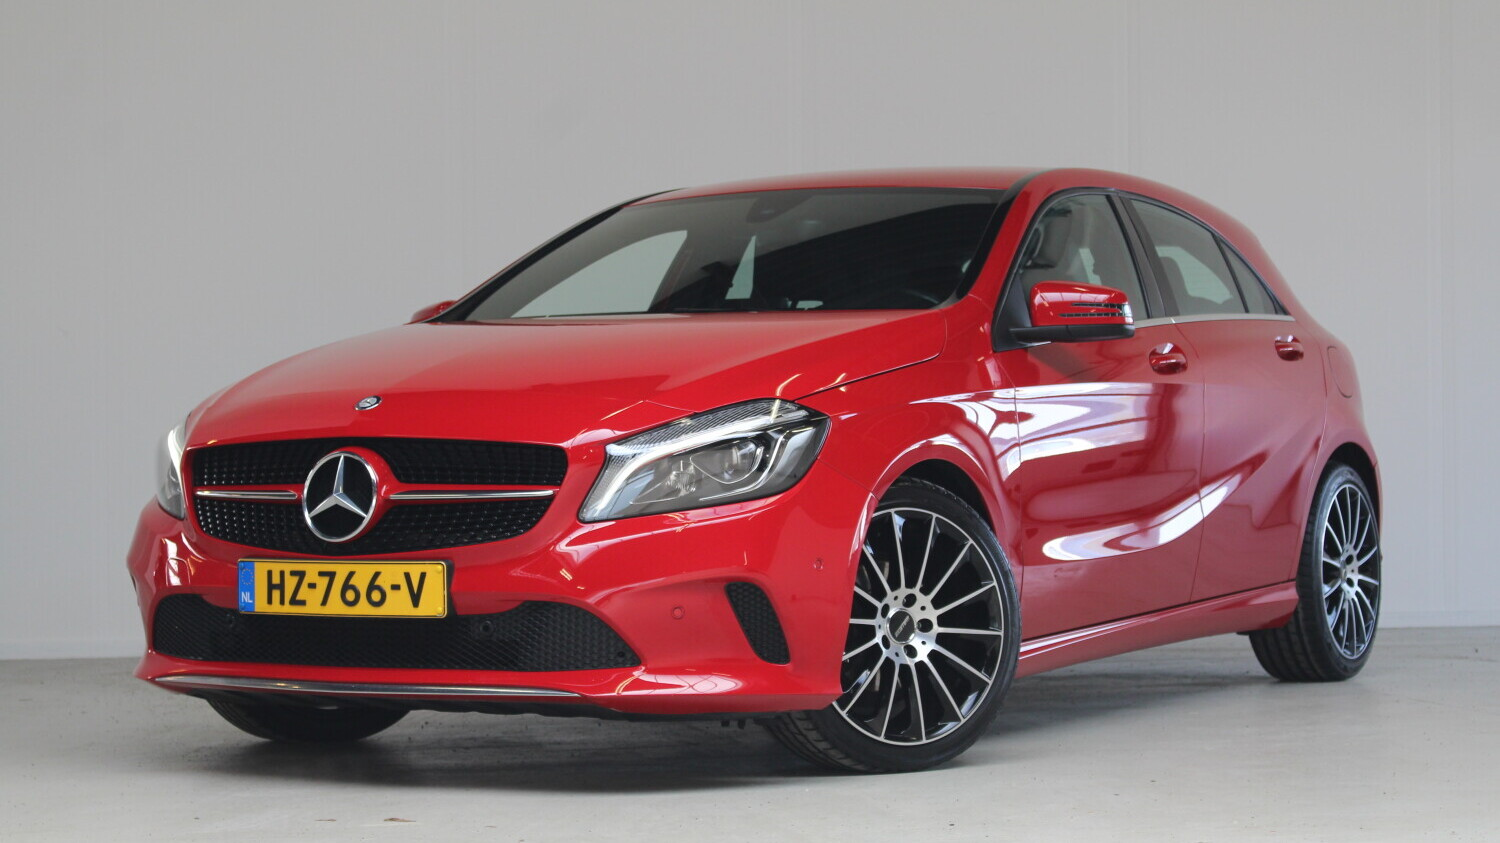 Mercedes-Benz A-klasse Hatchback 2016 HZ-766-V 1